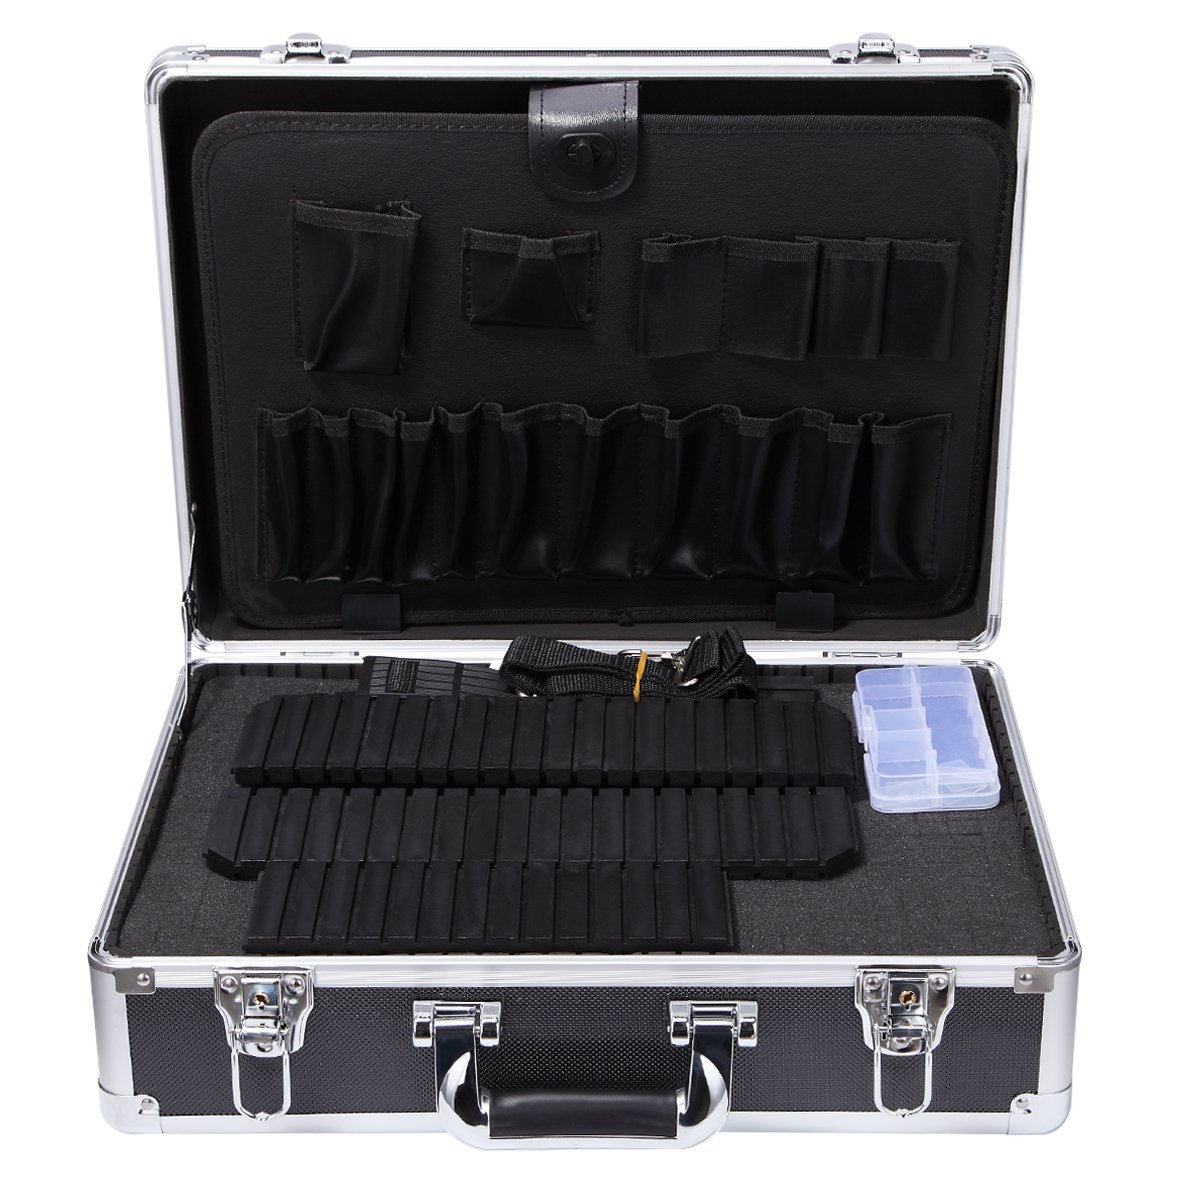 ALUBOX Aluminum Tool Box with Pre-Scored Foam Insert Hard Briefcase Lockable Metal Tools Organizer